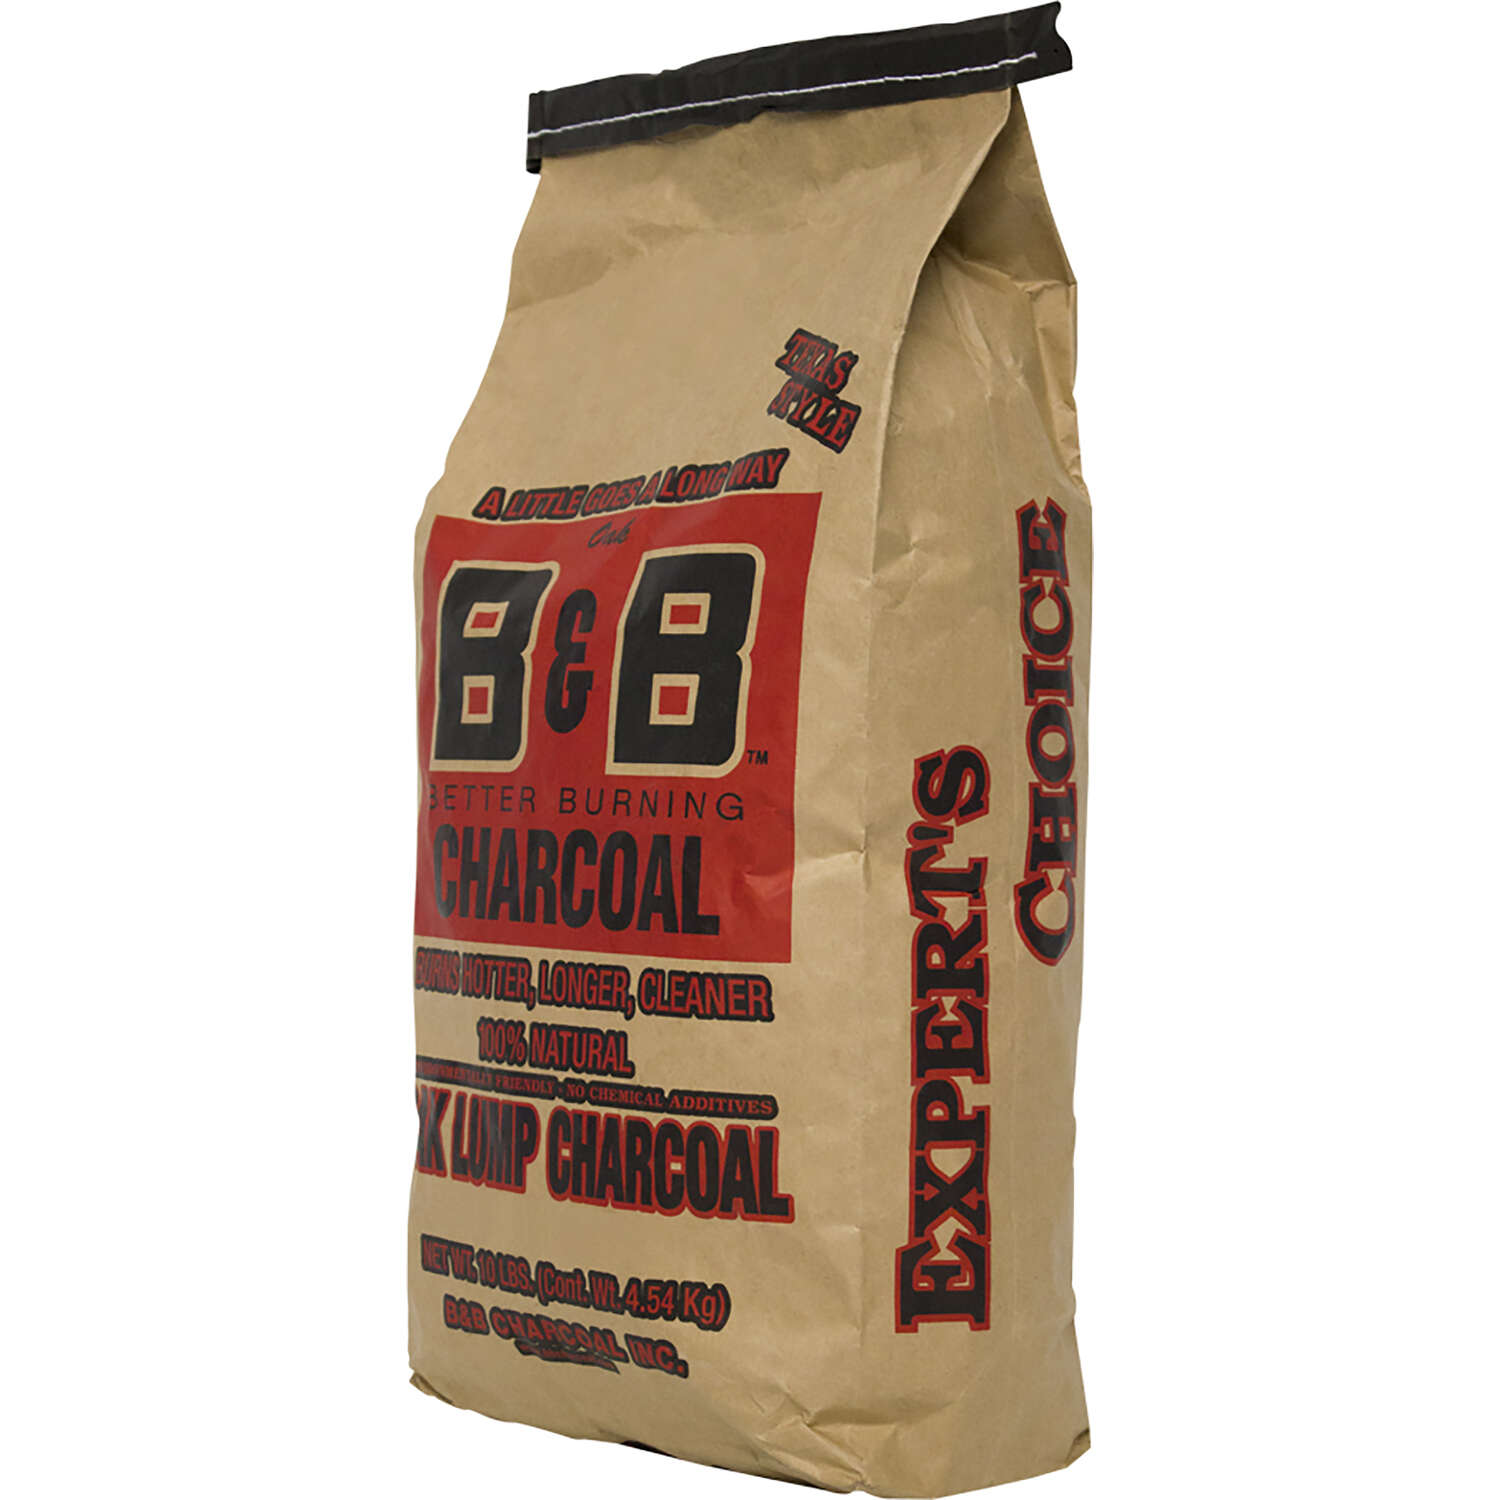 B&B Charcoal  All Natural Oak Hardwood  Lump Charcoal  10 lb.